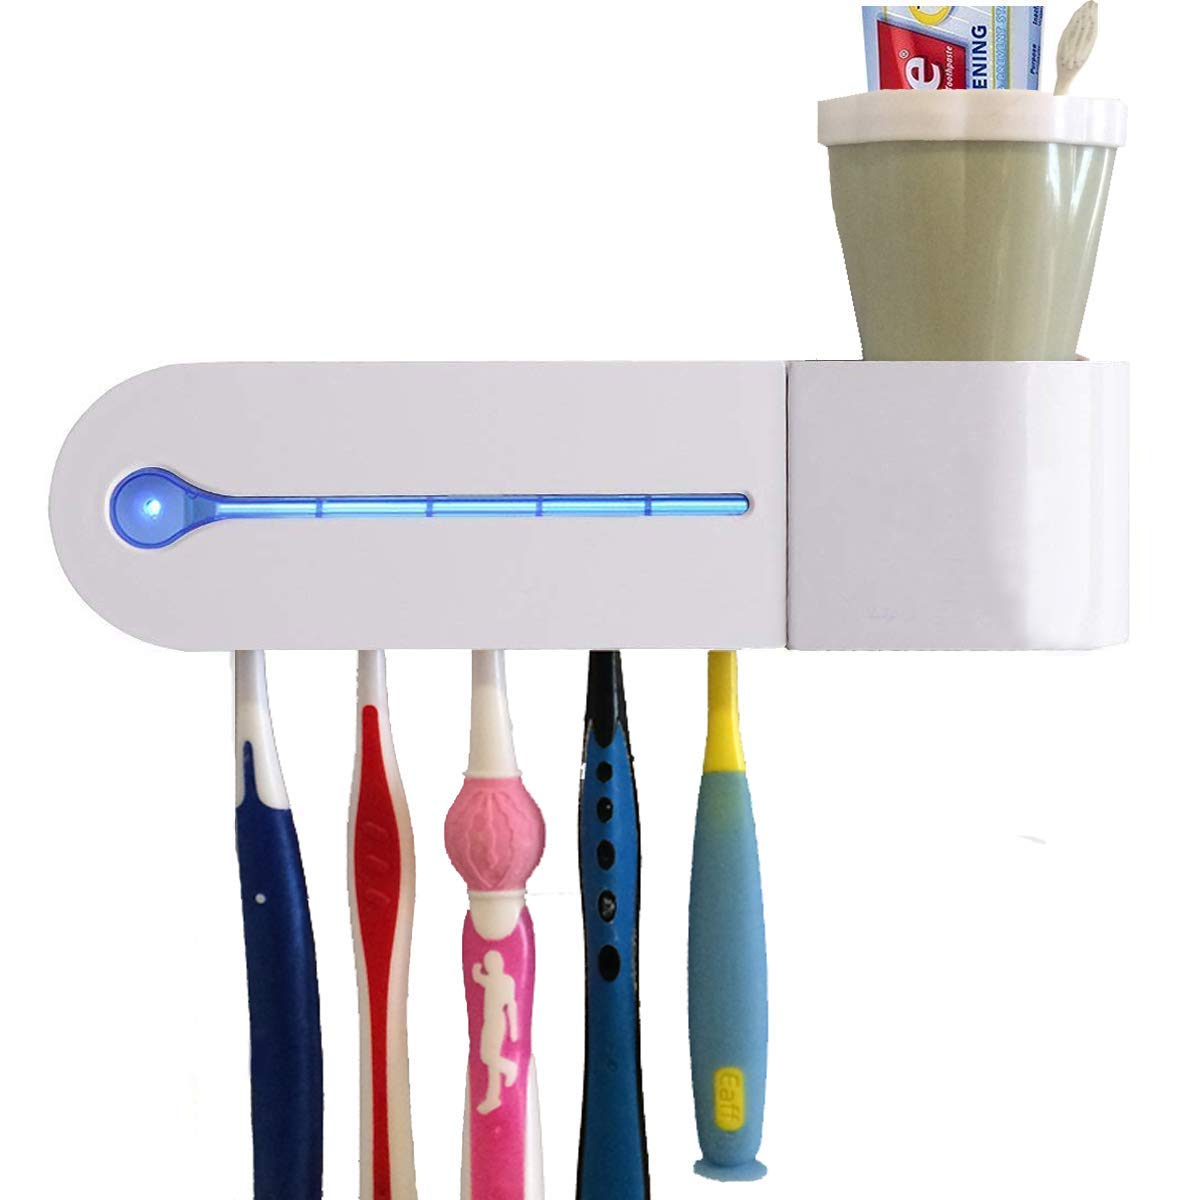 MIFAVOR UV Toothbrush Sanitizer and Holder Wall Mounted AC Plug Family Toothbrush Cleaner for Kids Women Bathroom (White)